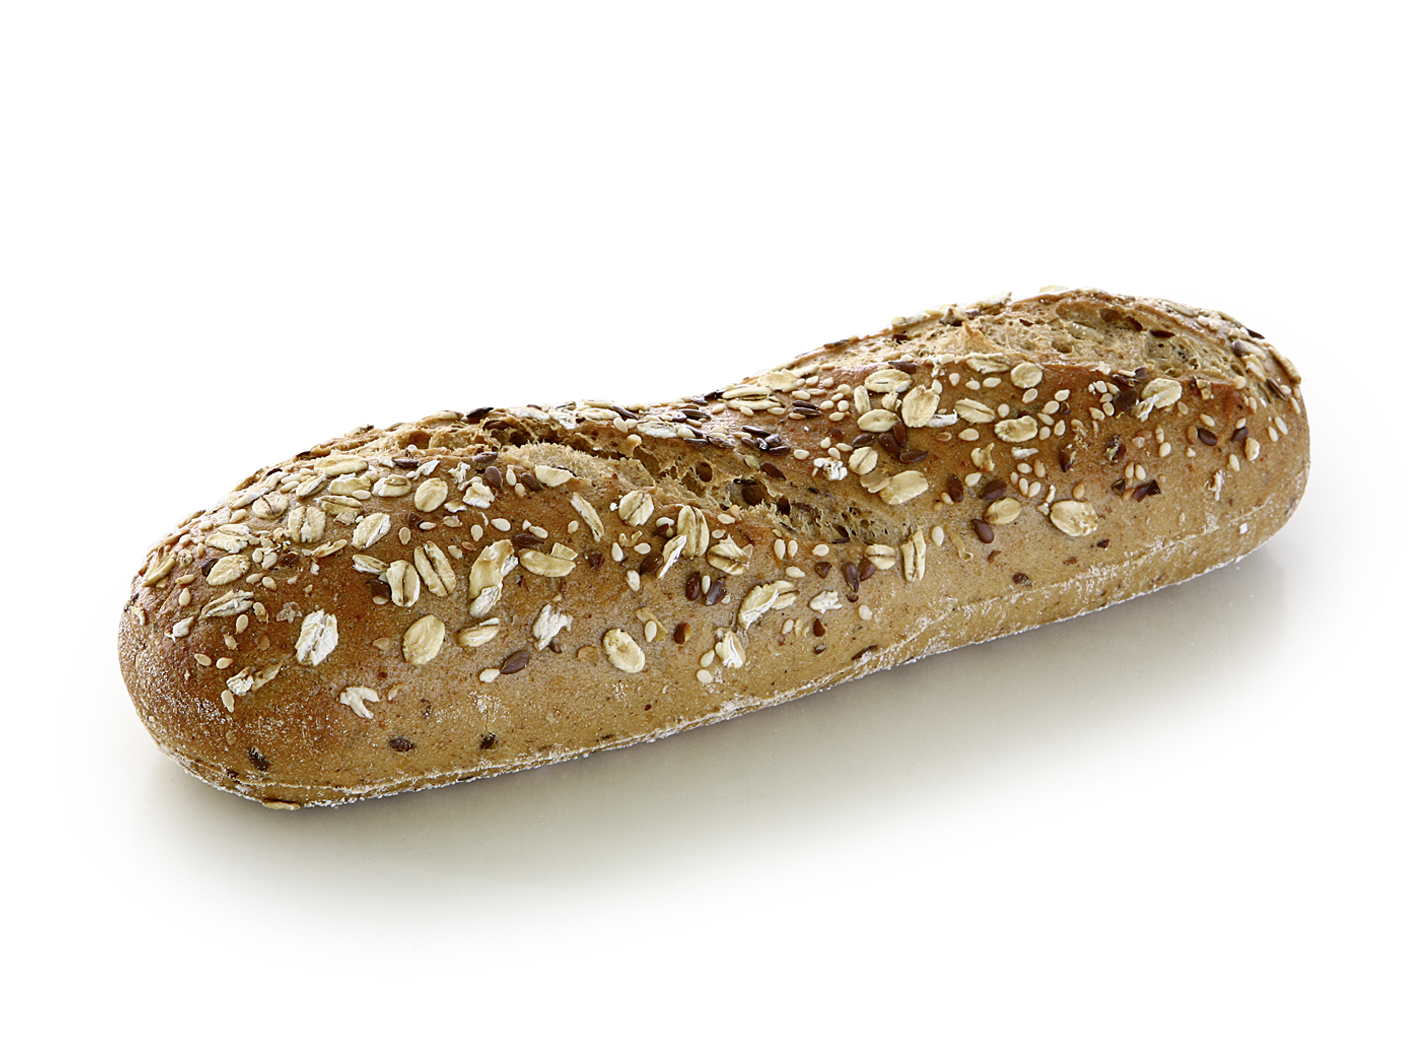 Baguette with Seeds - Longish baked multi grain roll with 5% oil seeds, rye flour and oat flakes/ length: approx. 21cm